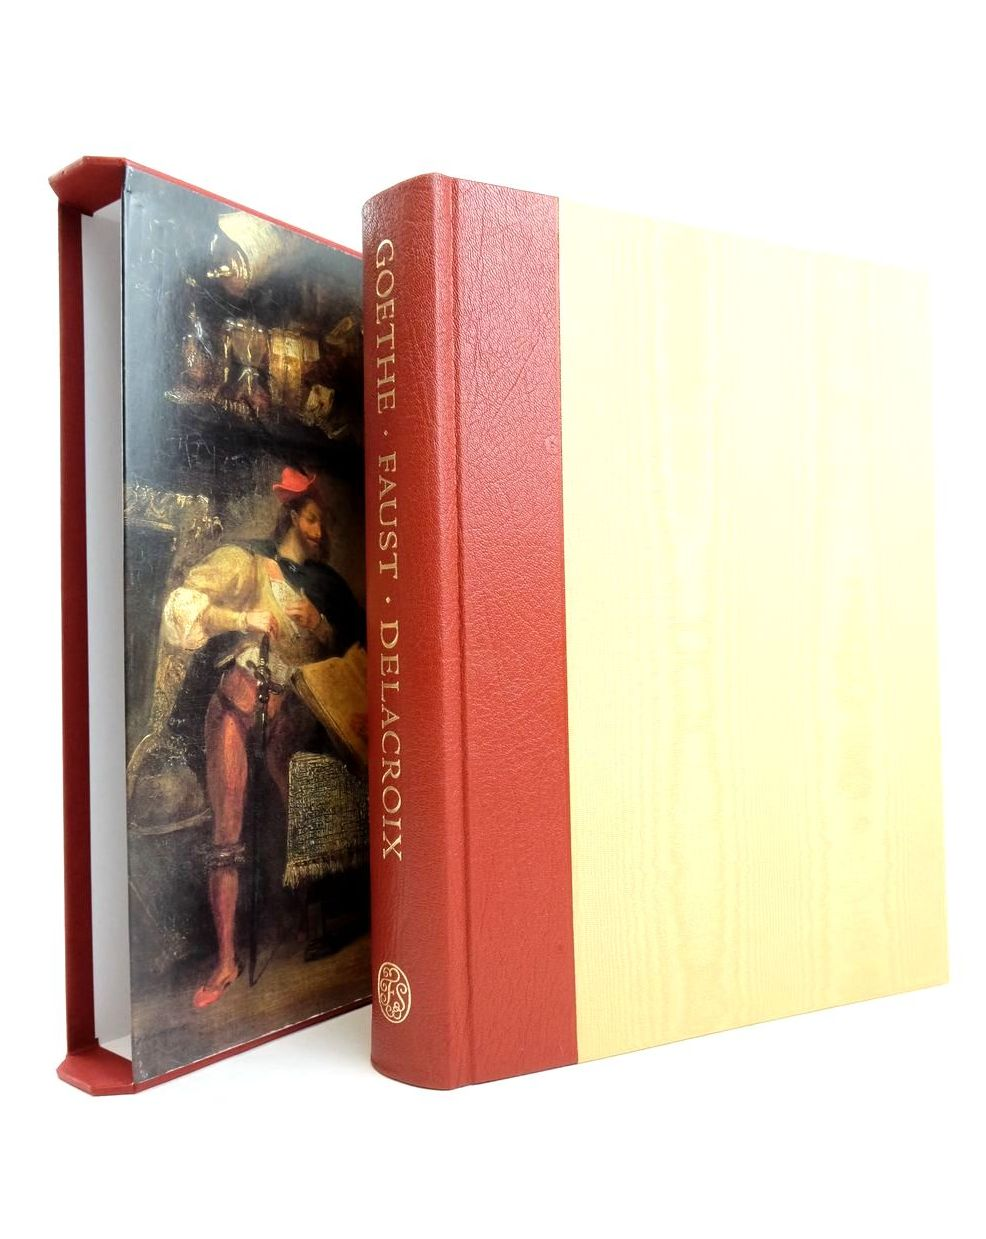 Photo of FAUST written by Goethe, Johann Wolfgang Von Luke, David Boyle, Nicholas illustrated by Delacroix, Eugene et al., published by Folio Society (STOCK CODE: 1821529)  for sale by Stella & Rose's Books